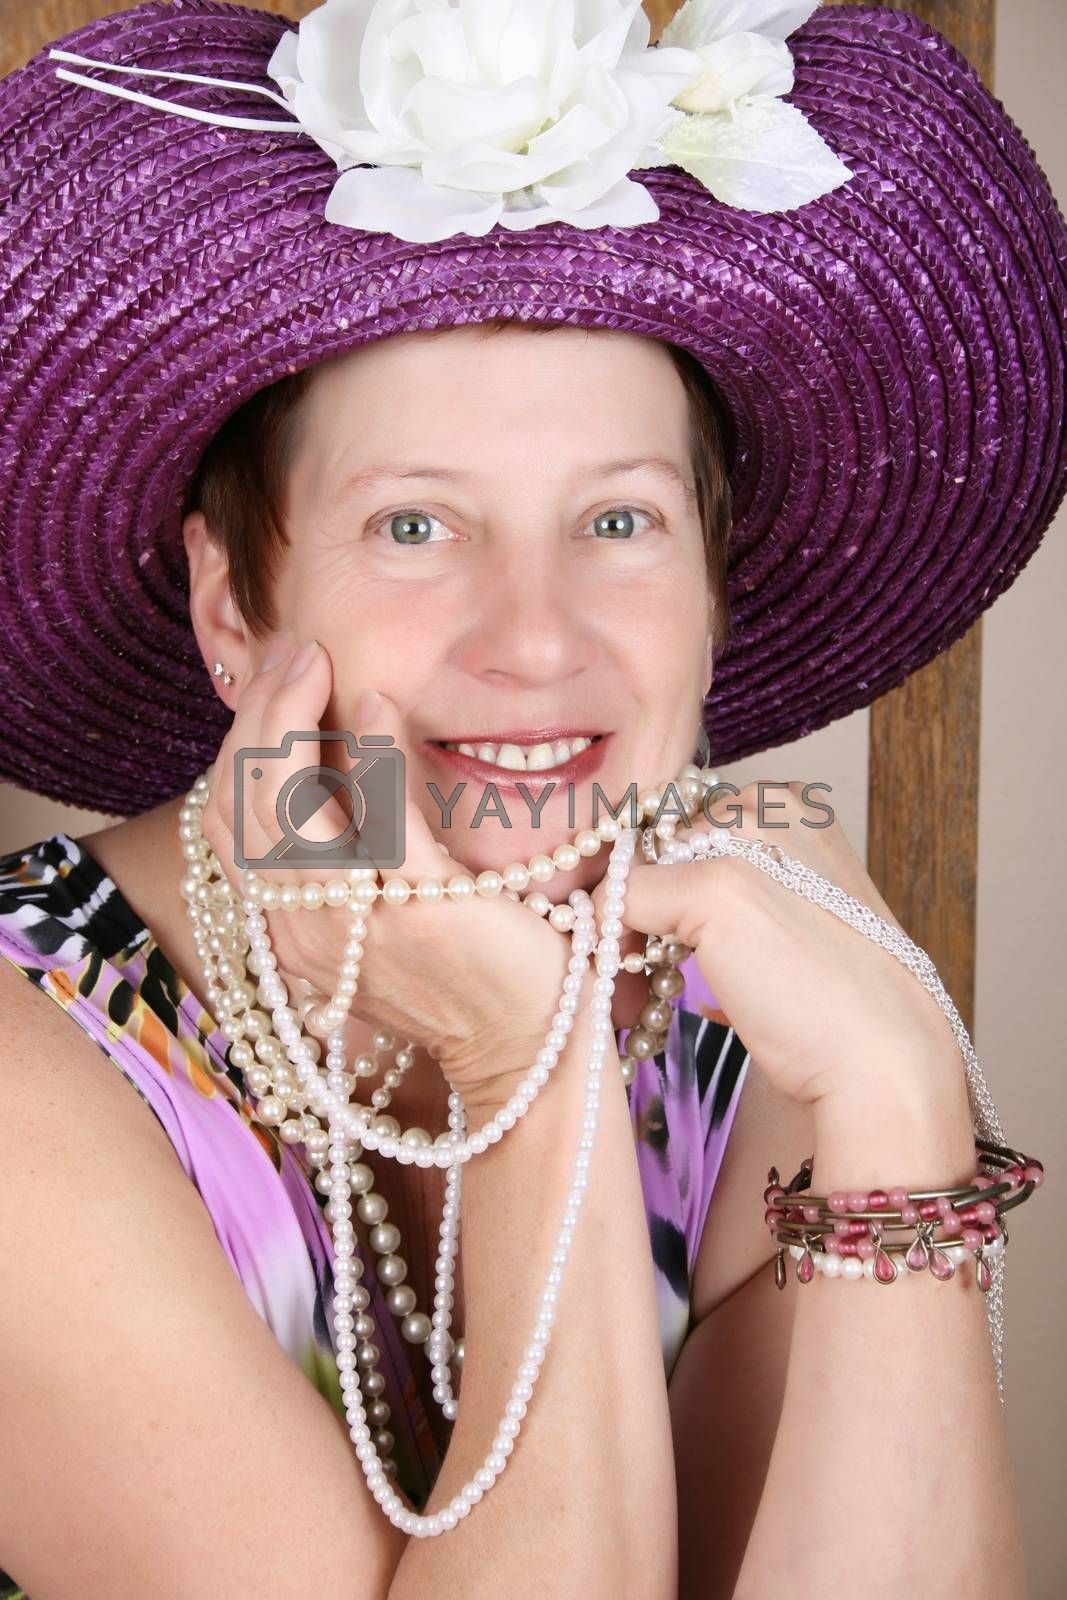 Mature female wearing a purple hat and jewellery